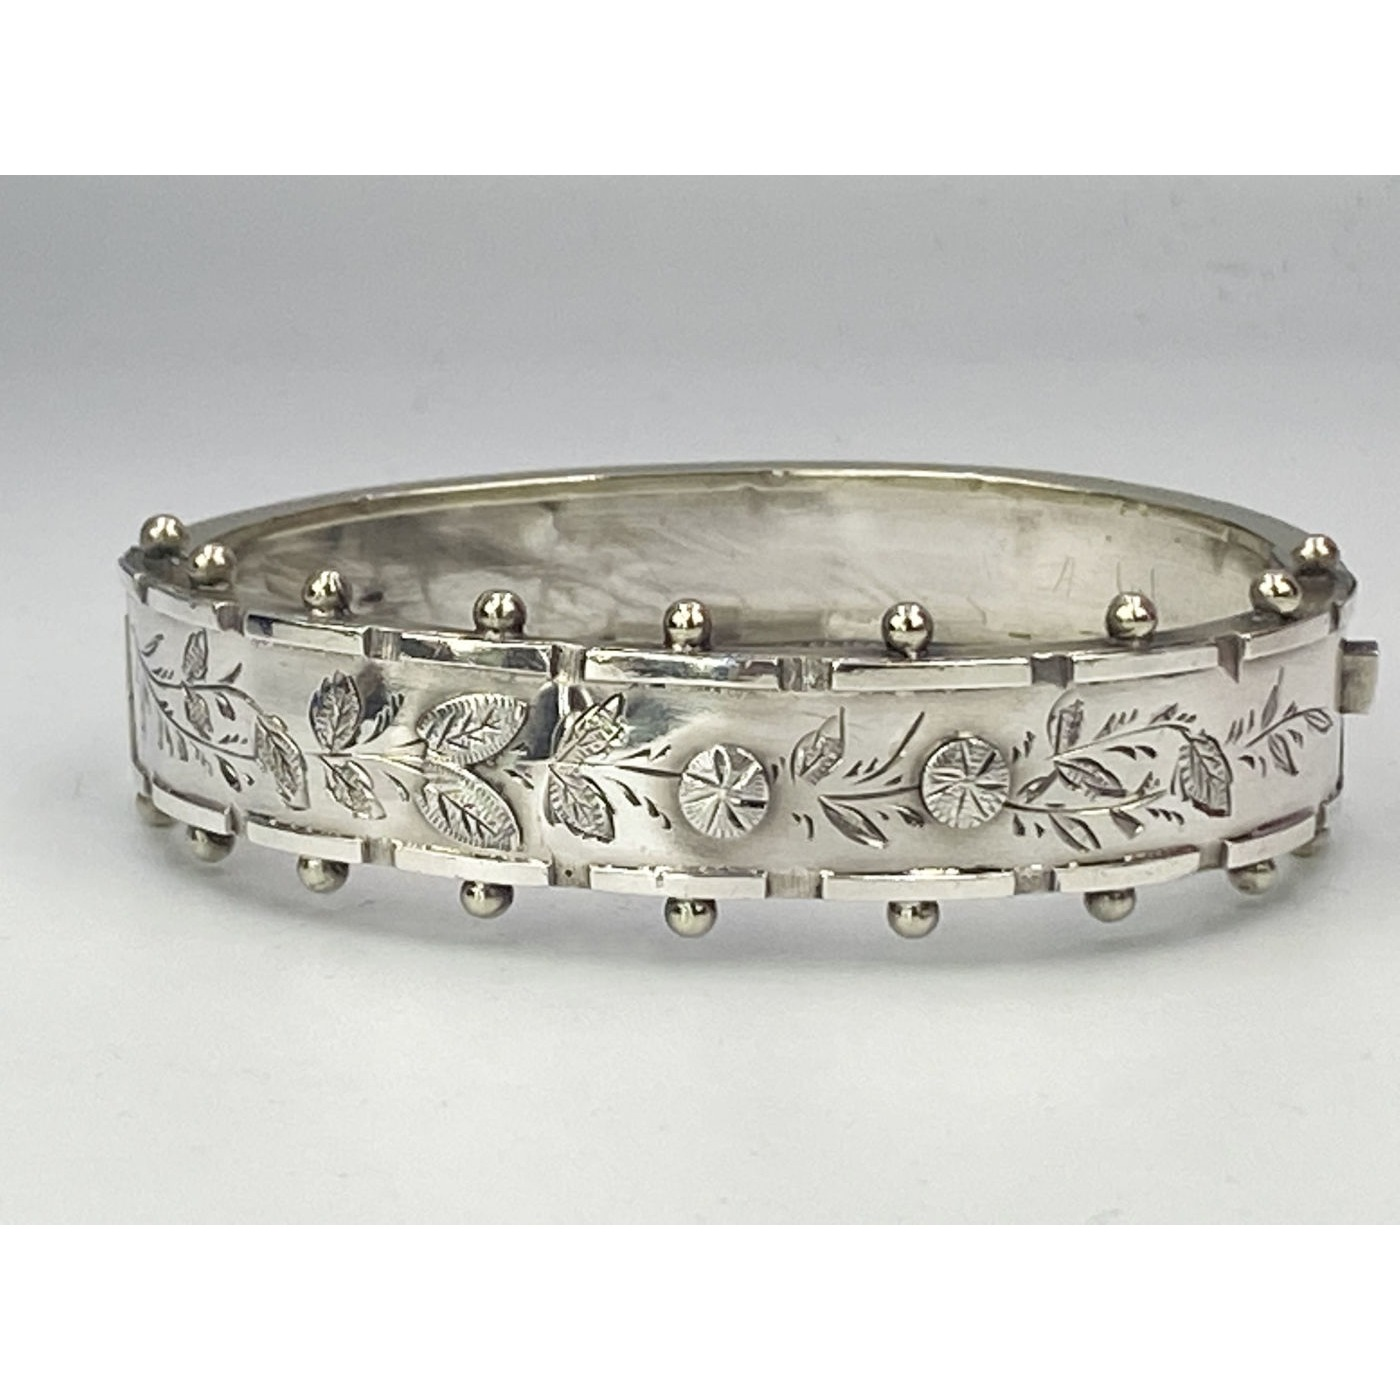 Beaded Outer Edge Applied Flowers Narrow English Silver Bangle